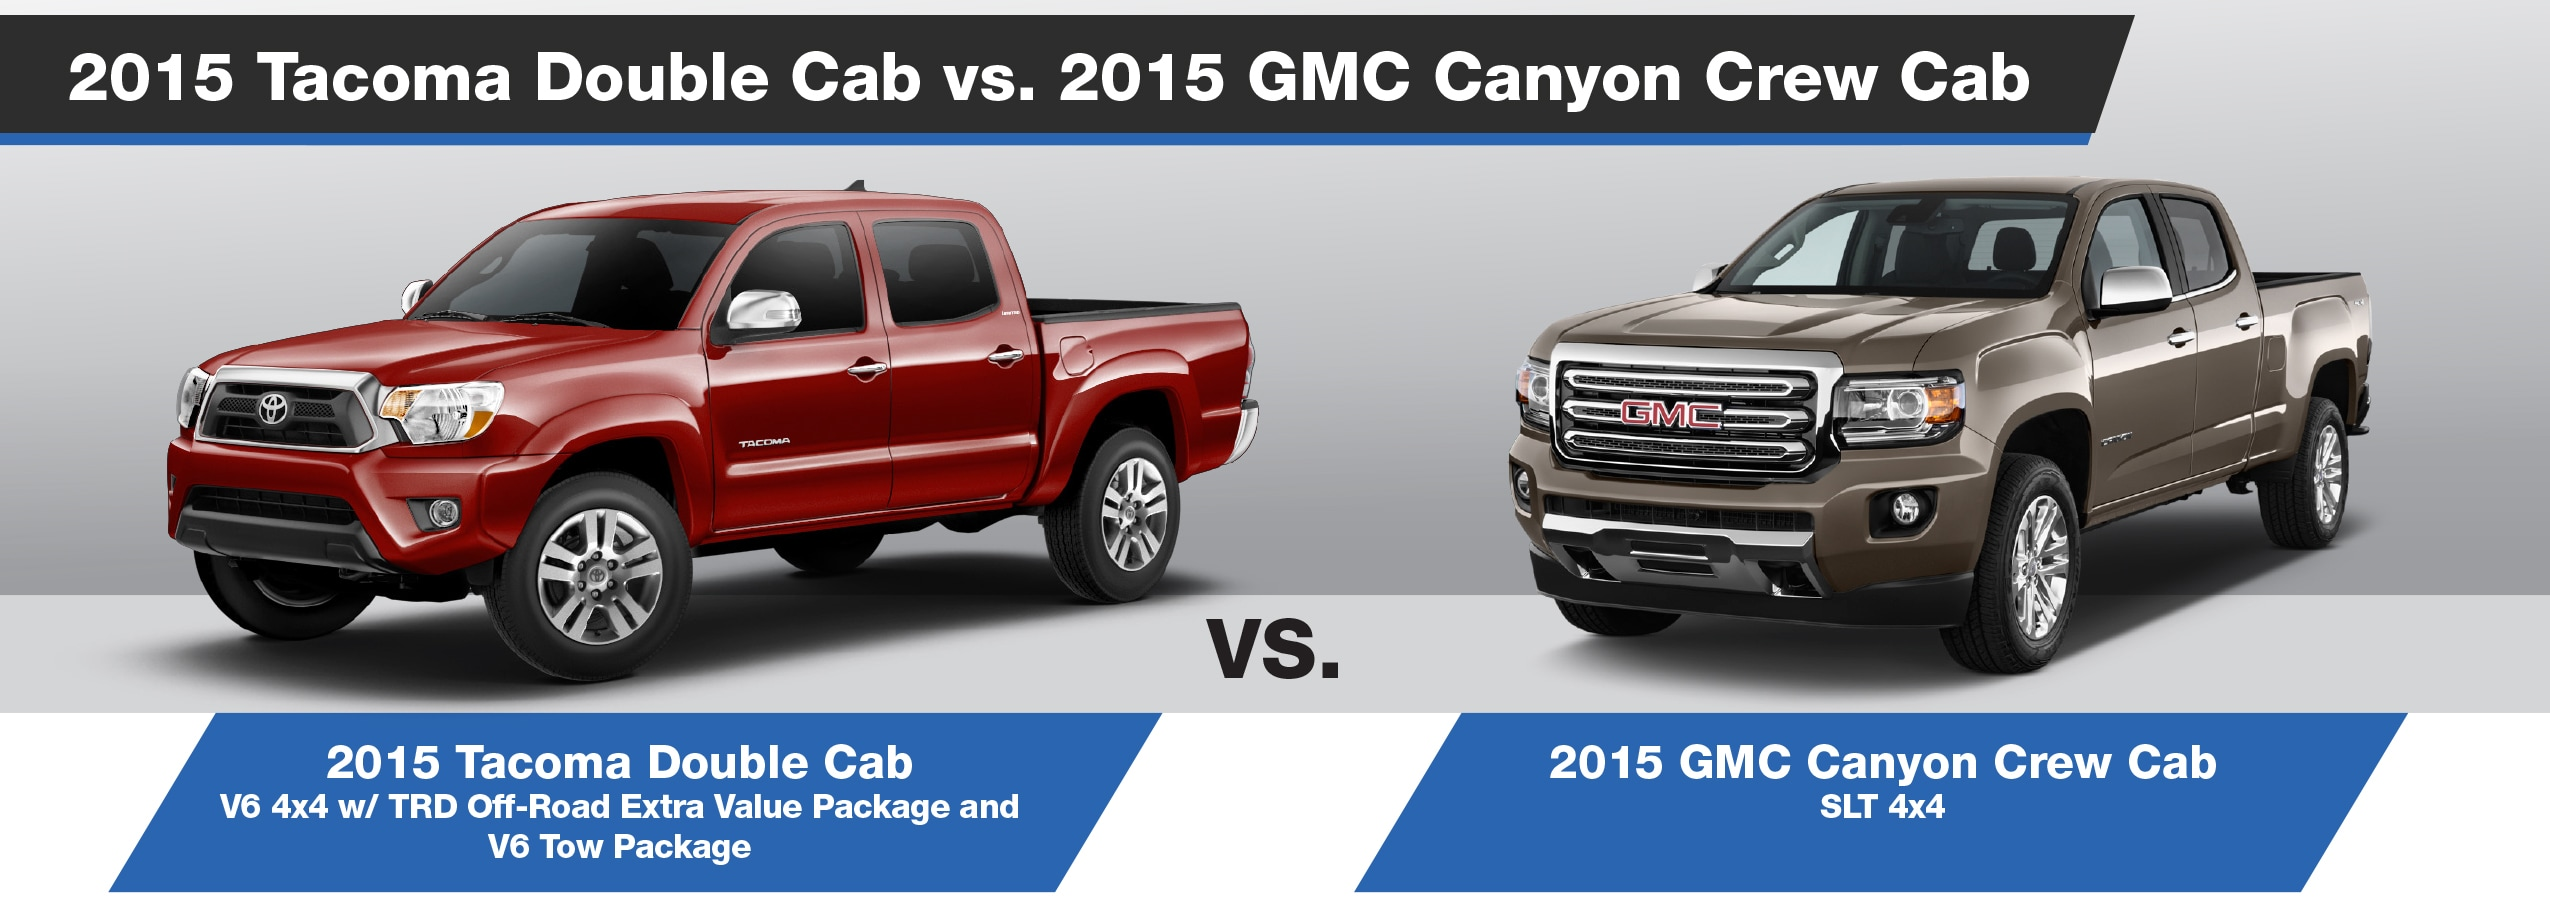 Chevy Double Cab Vs Crew Cab | Autos Post